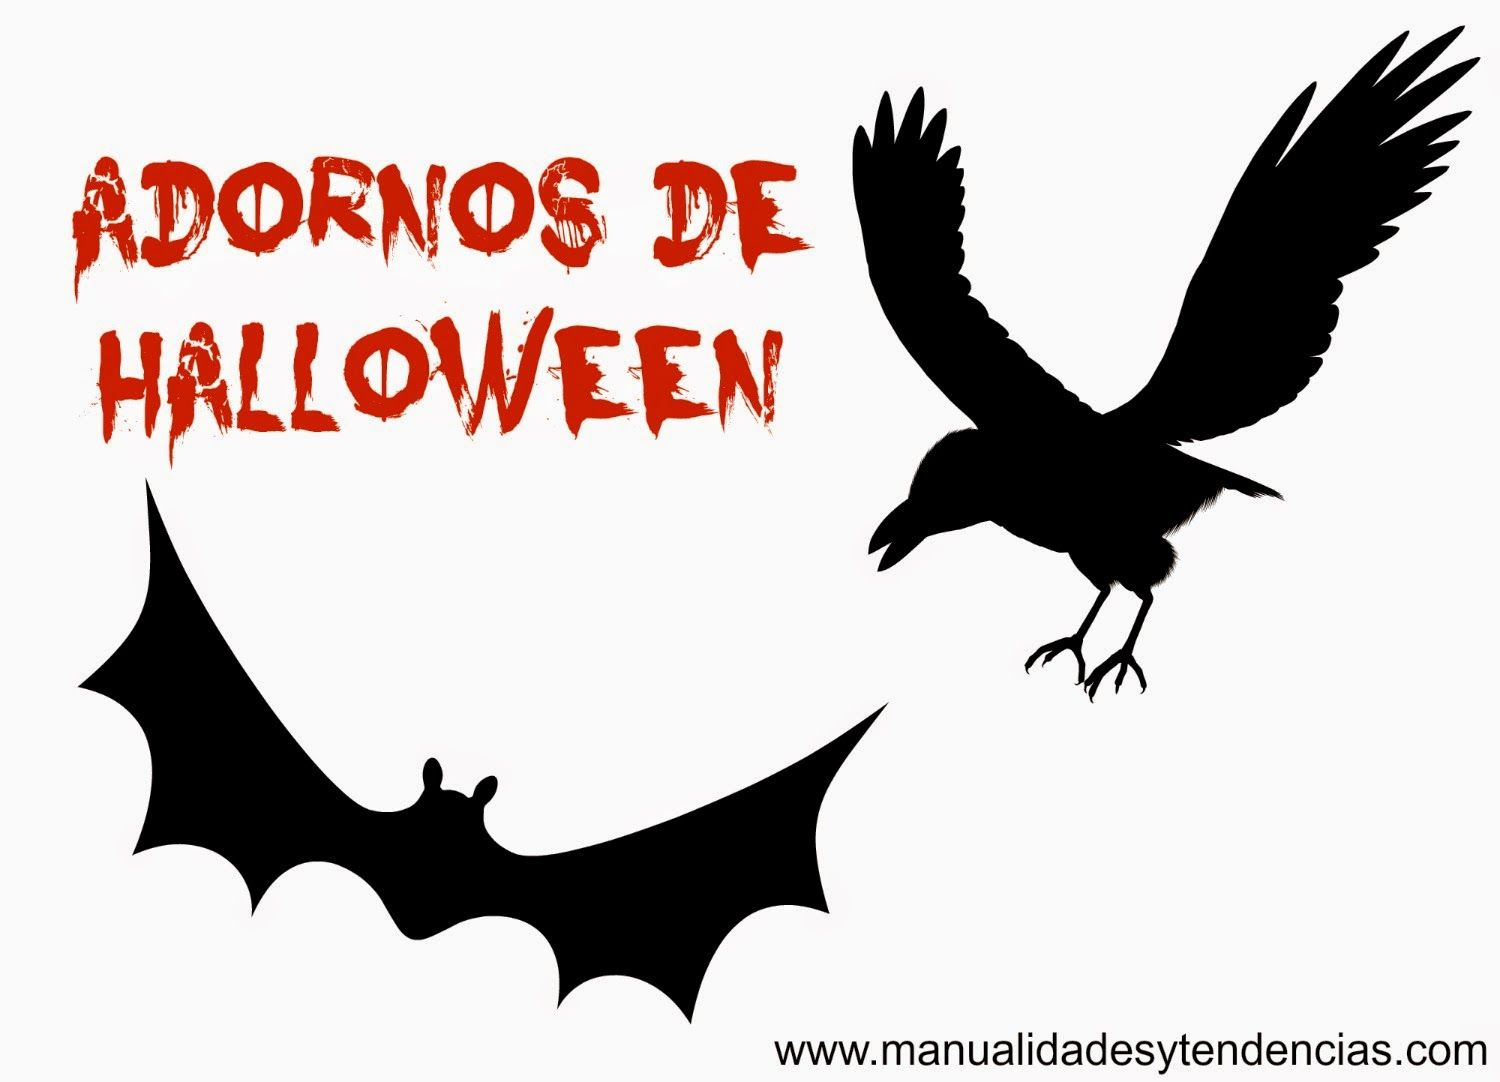 murcilago y cuervo para halloween imprimibles freebies